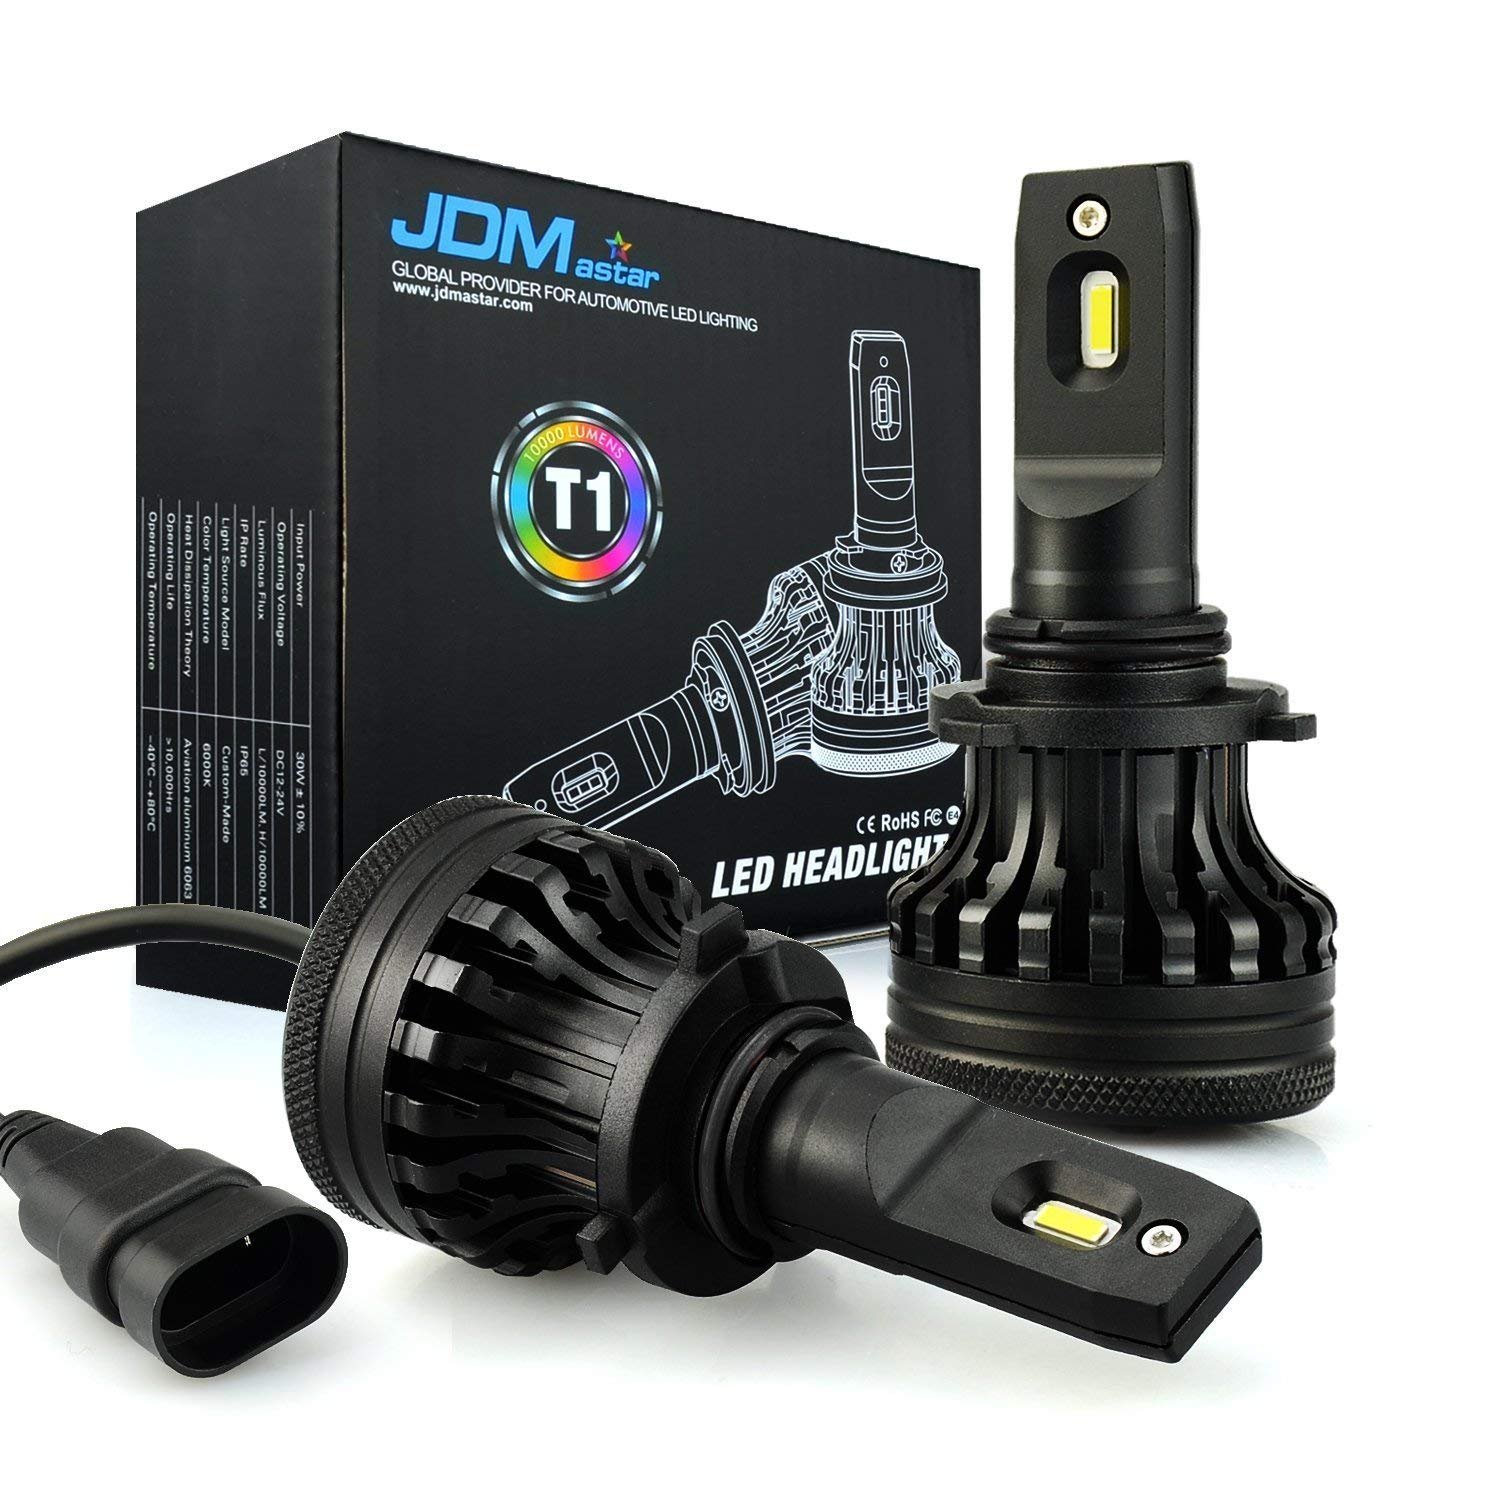 JDM ASTAR Newest Version T1 10000 Lumens Extremely Bright High Power 9006 All-in-One LED Headlight Bulbs Conversion Kit, Xenon White